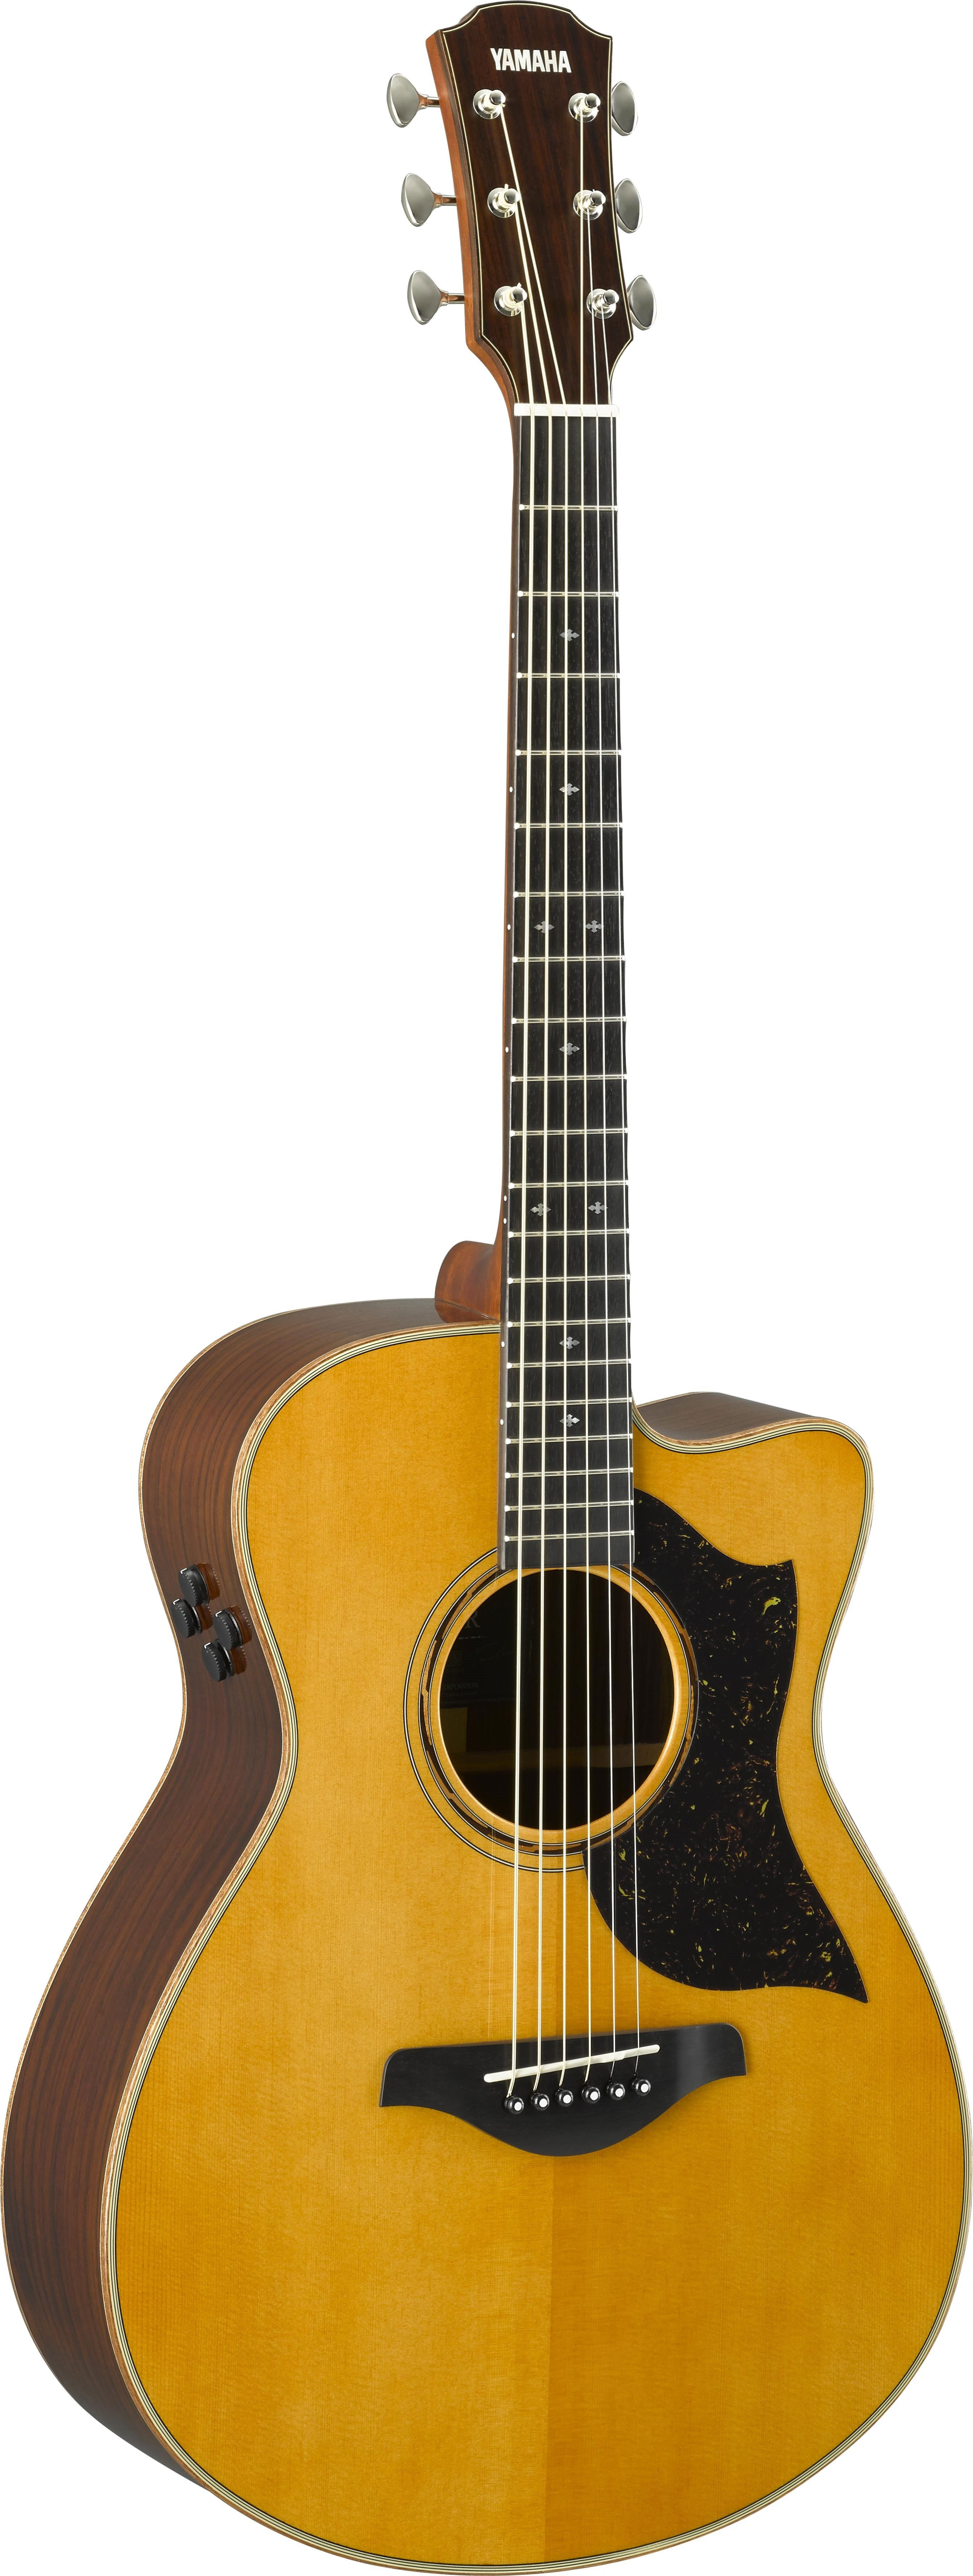 A series a5 acoustic guitars guitars basses for Yamaha series a